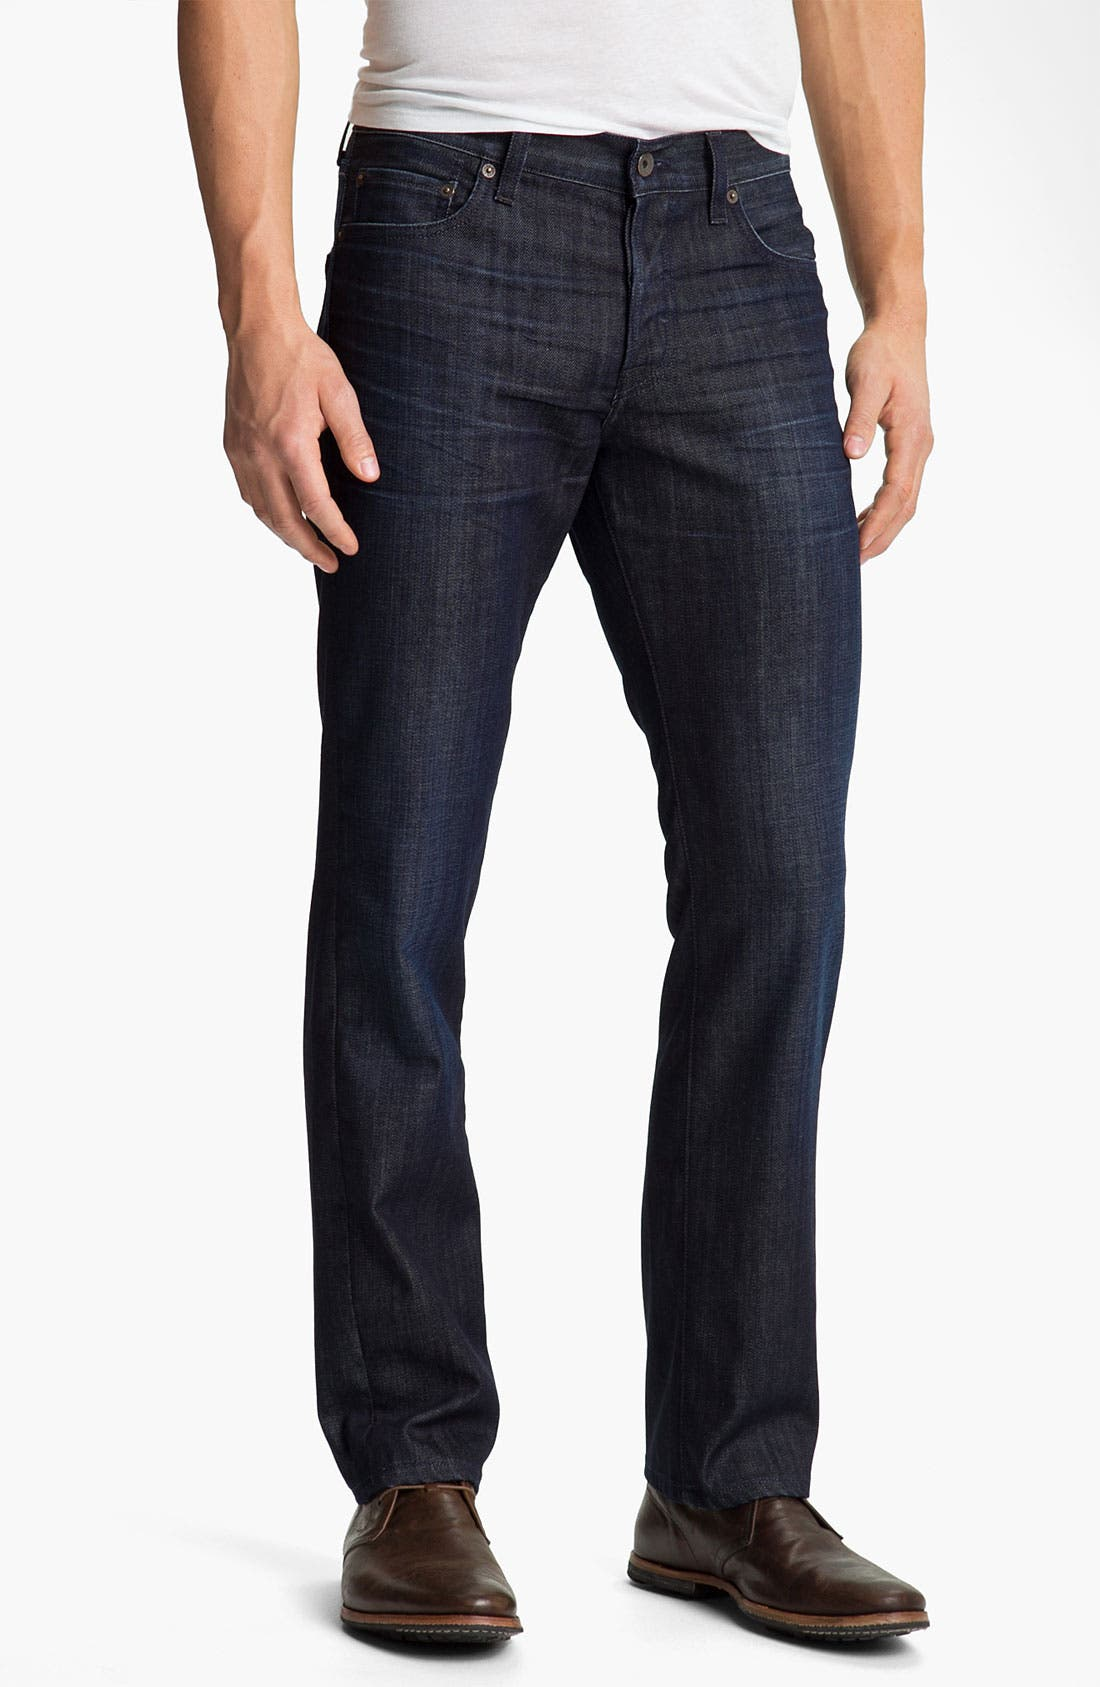 Alternate Image 1 Selected - Lucky Brand '221 Original' Straight Leg Jeans (Dark Hickory)